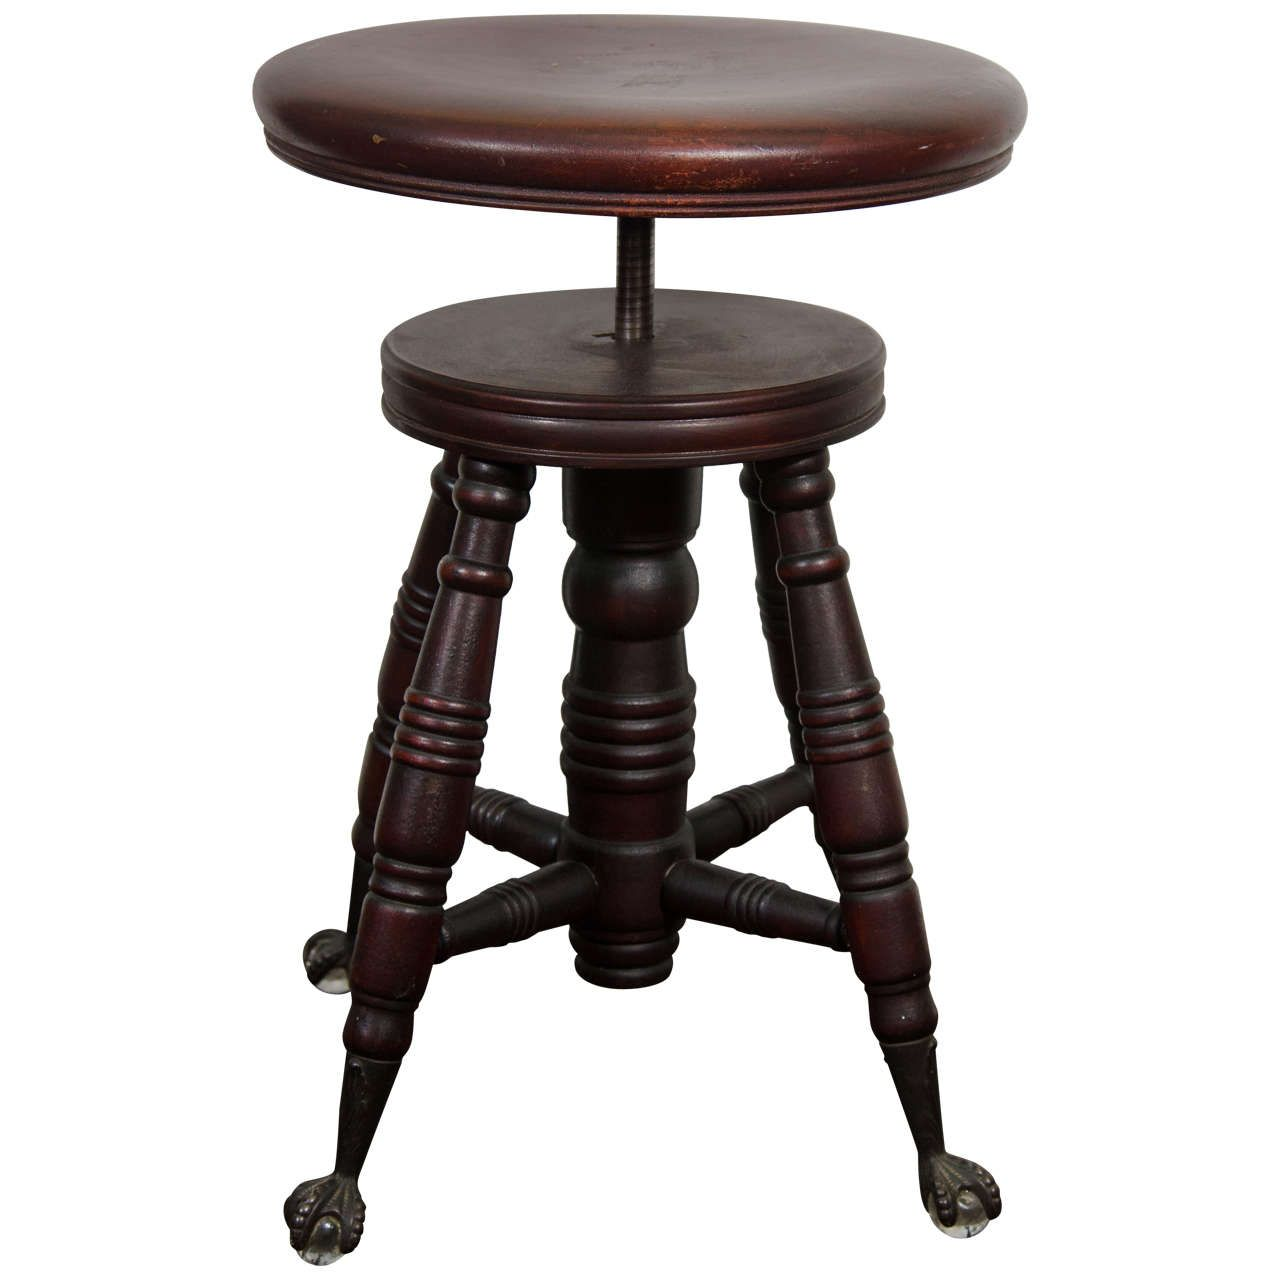 Captivating Antique Mahogany Turned Wood Adjustable Piano Stool